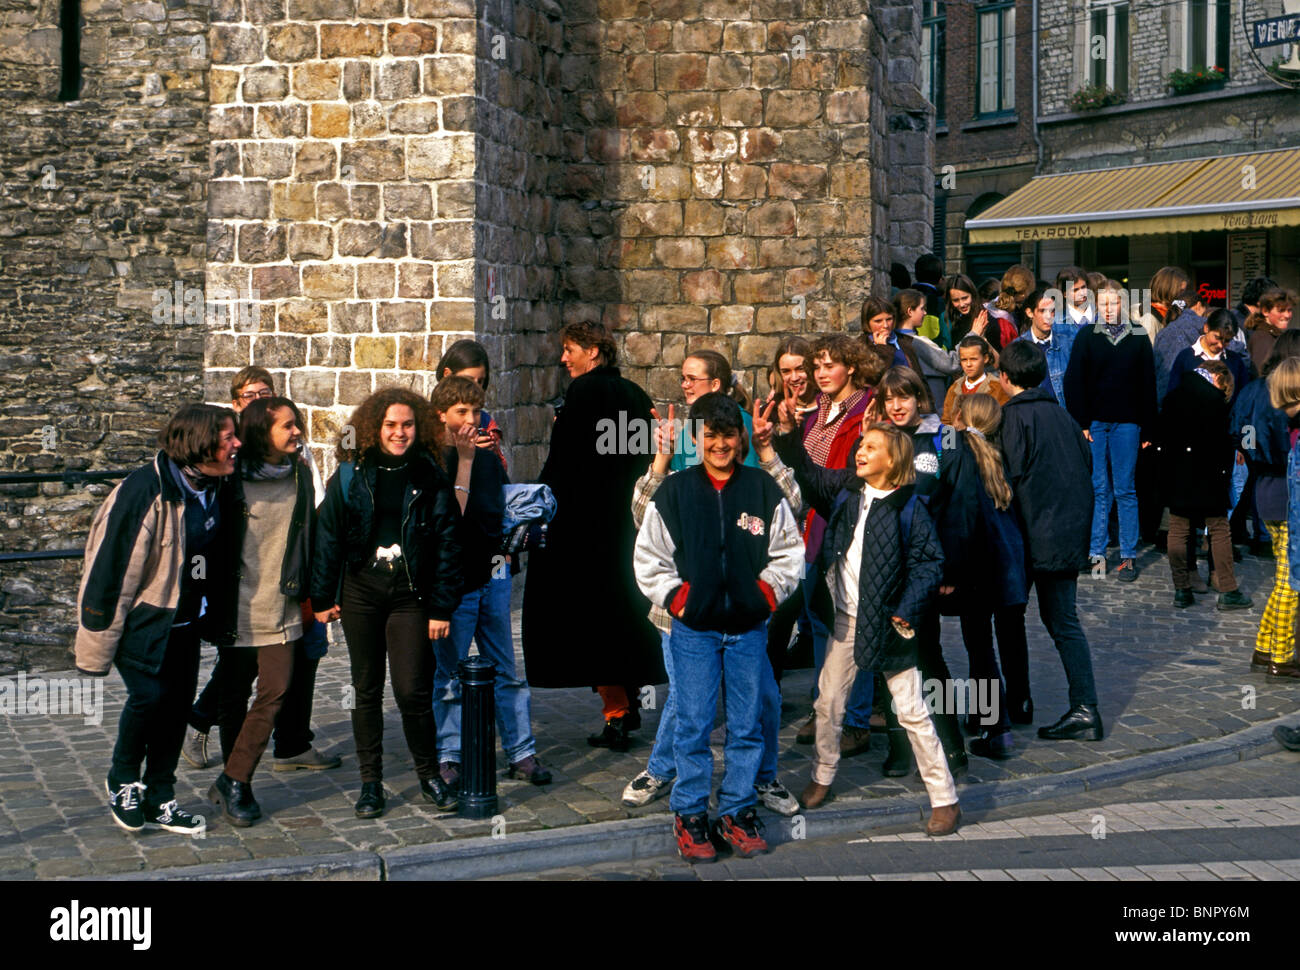 Belgian students, student field trip, city of Ghent, Ghent, East Flanders, East Flanders Province, Belgium, Europe - Stock Image